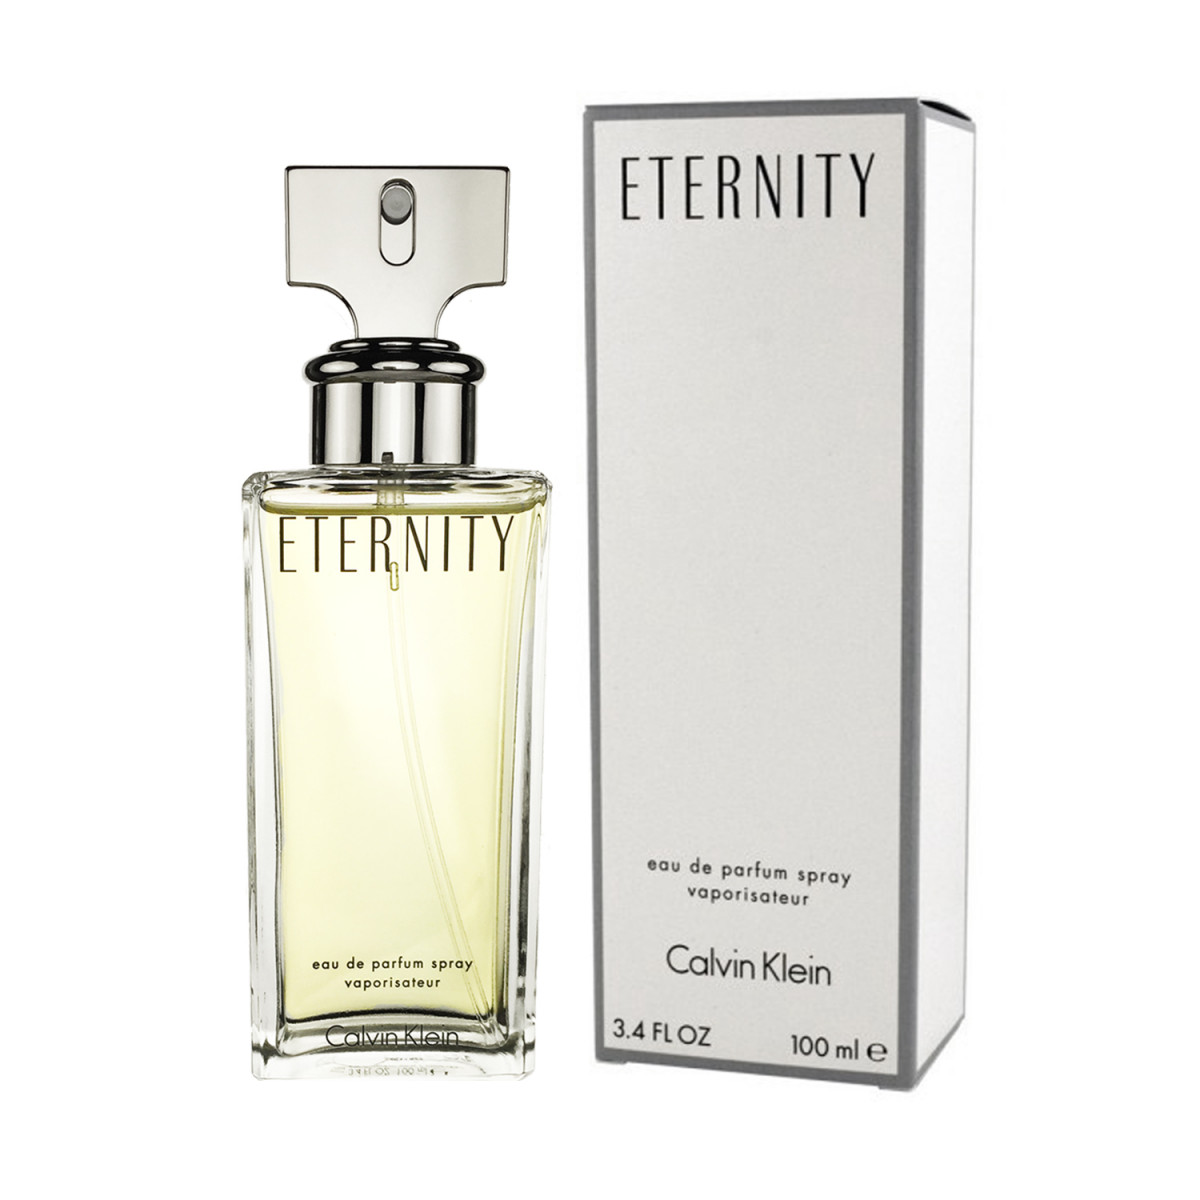 b7b844439549fd Calvin Klein Eternity for Women Eau De Parfum 100 ml (woman ...